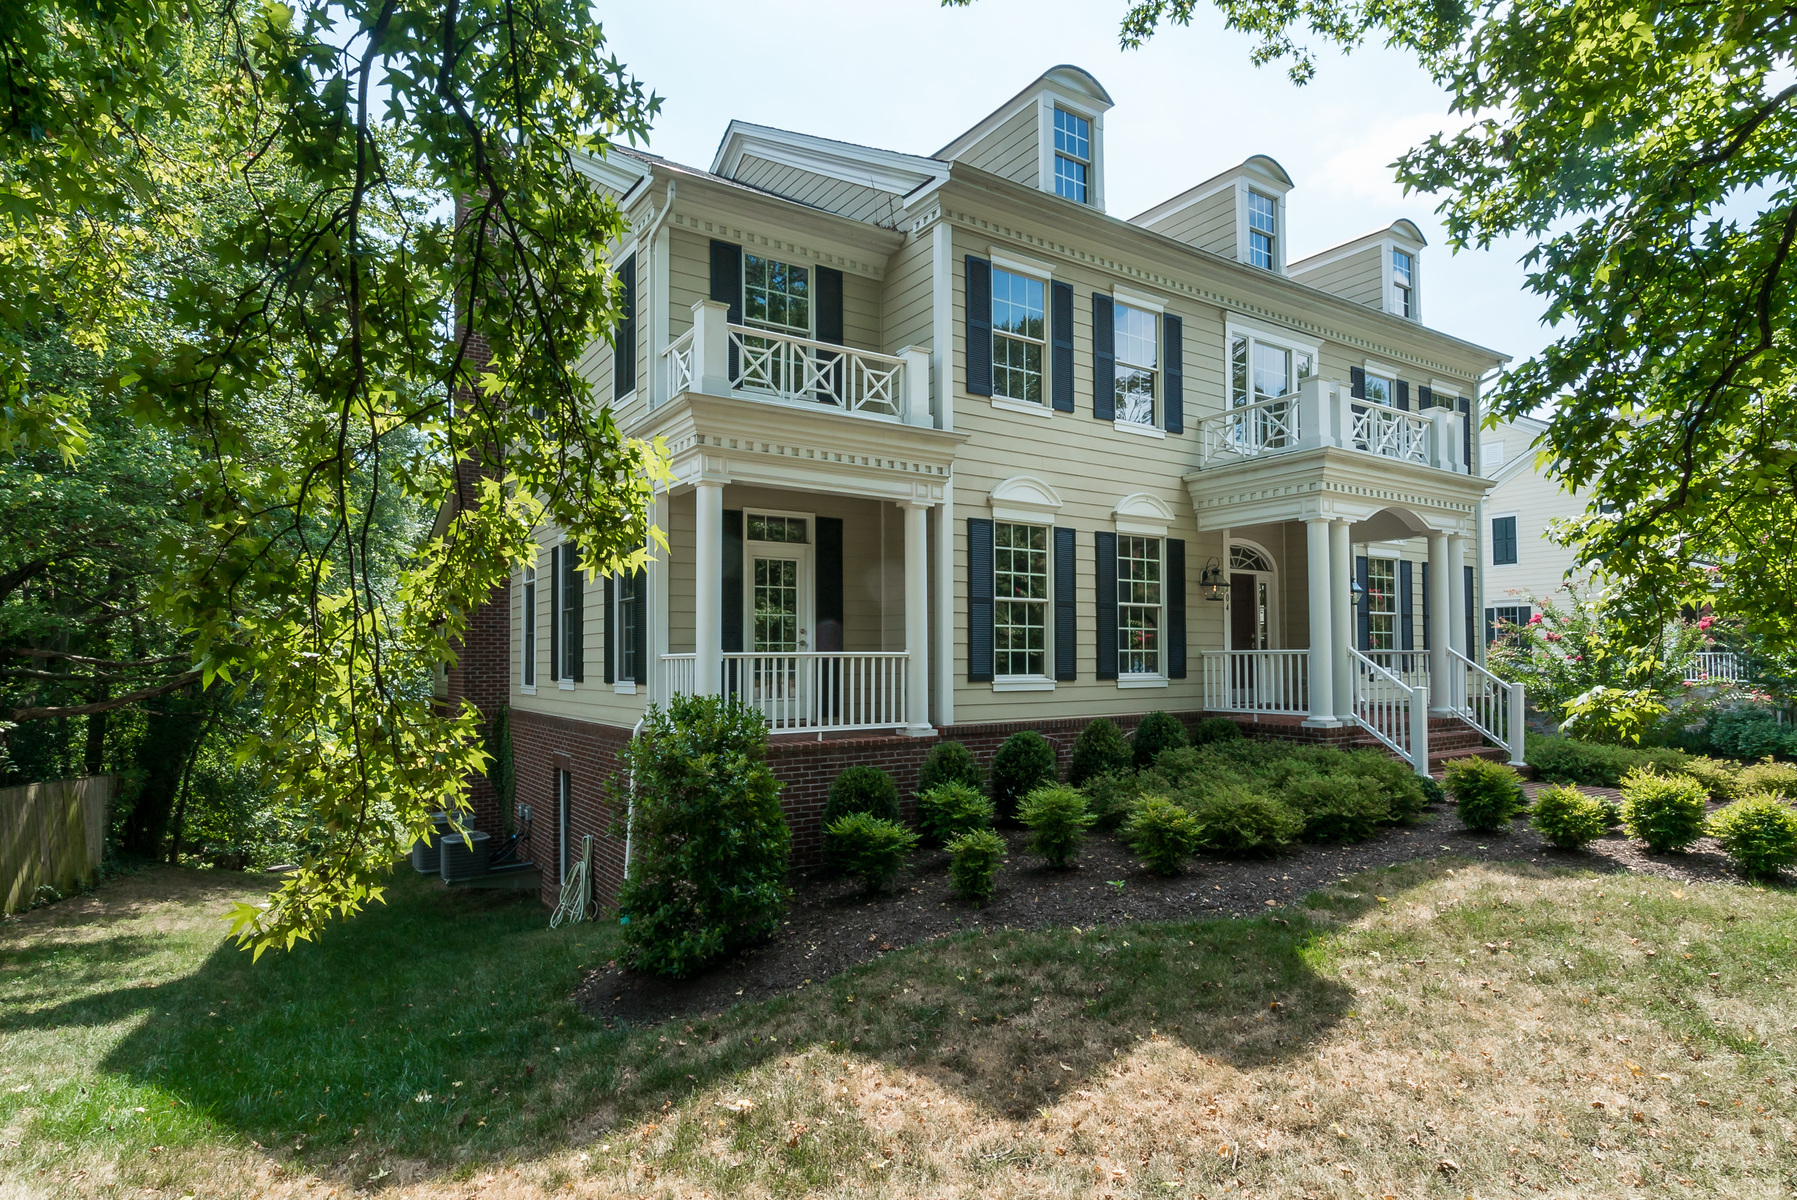 Additional photo for property listing at Cooper Dawson 104 Quaker Lane N Alexandria, バージニア 22304 アメリカ合衆国